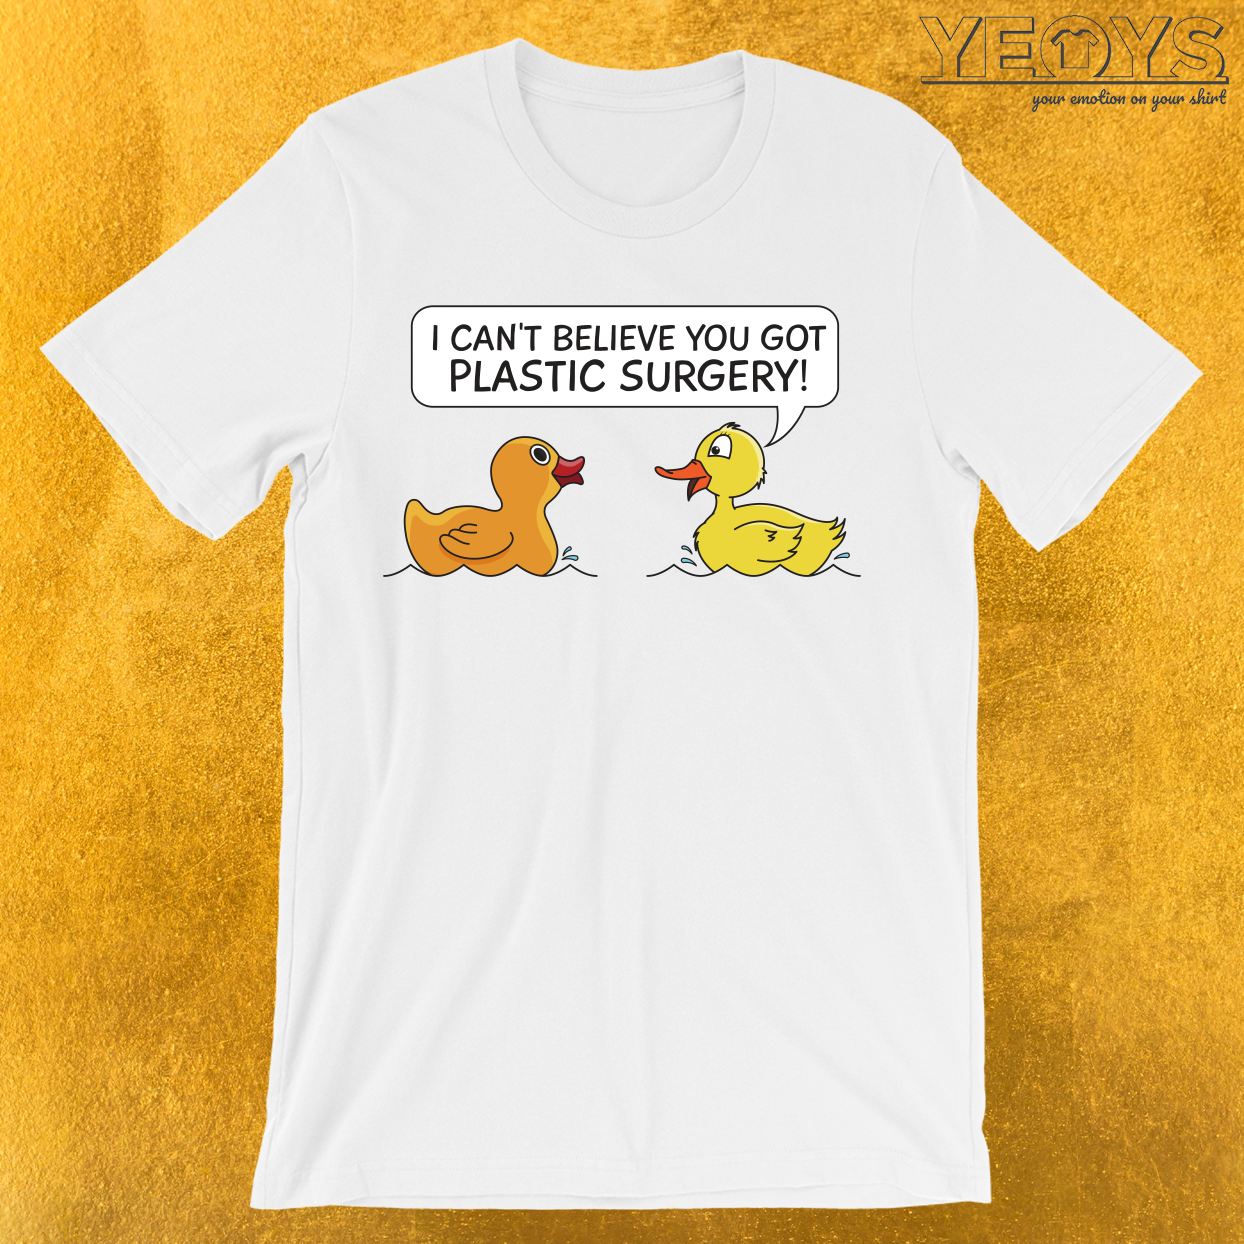 Plastic Surgery Rubberduck T-Shirt